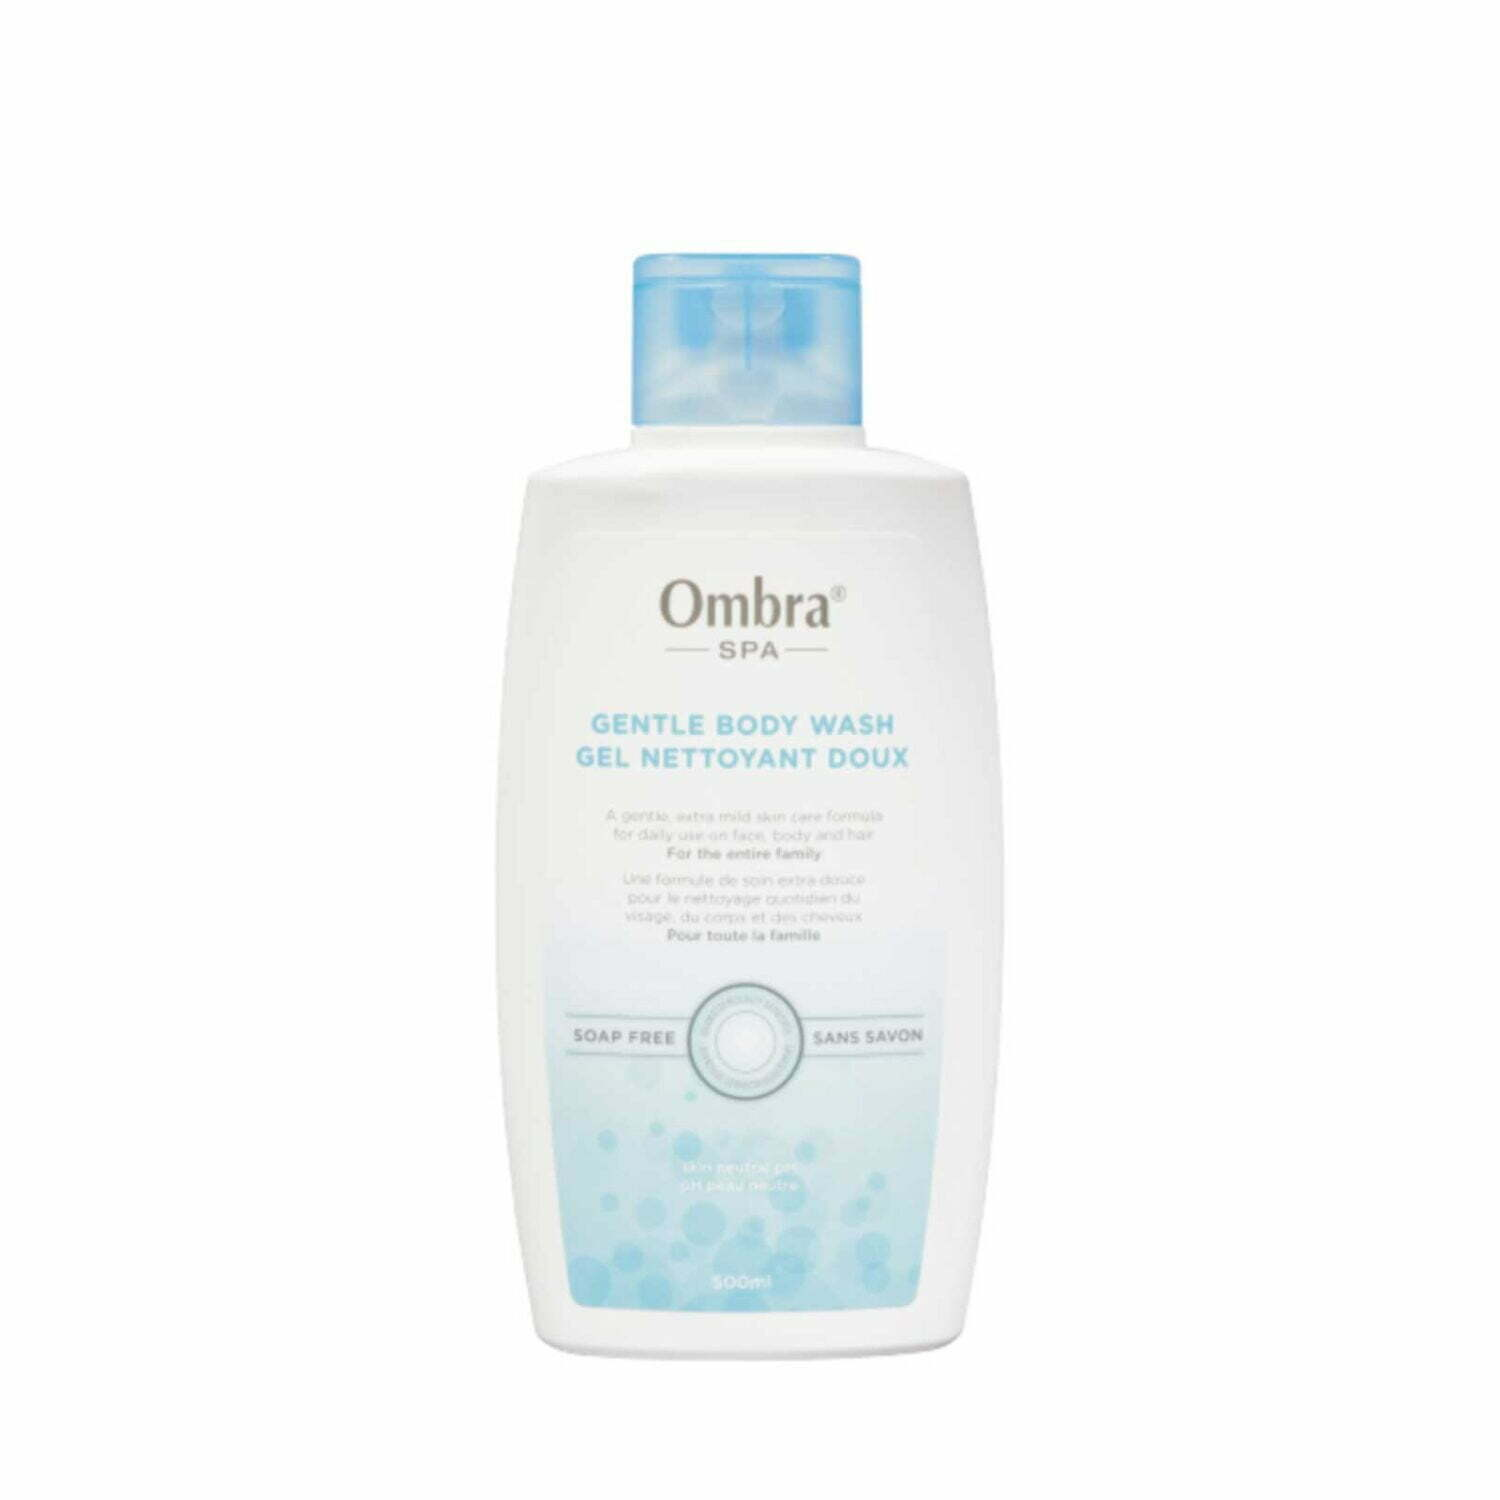 Ombra Gentle Body Wash